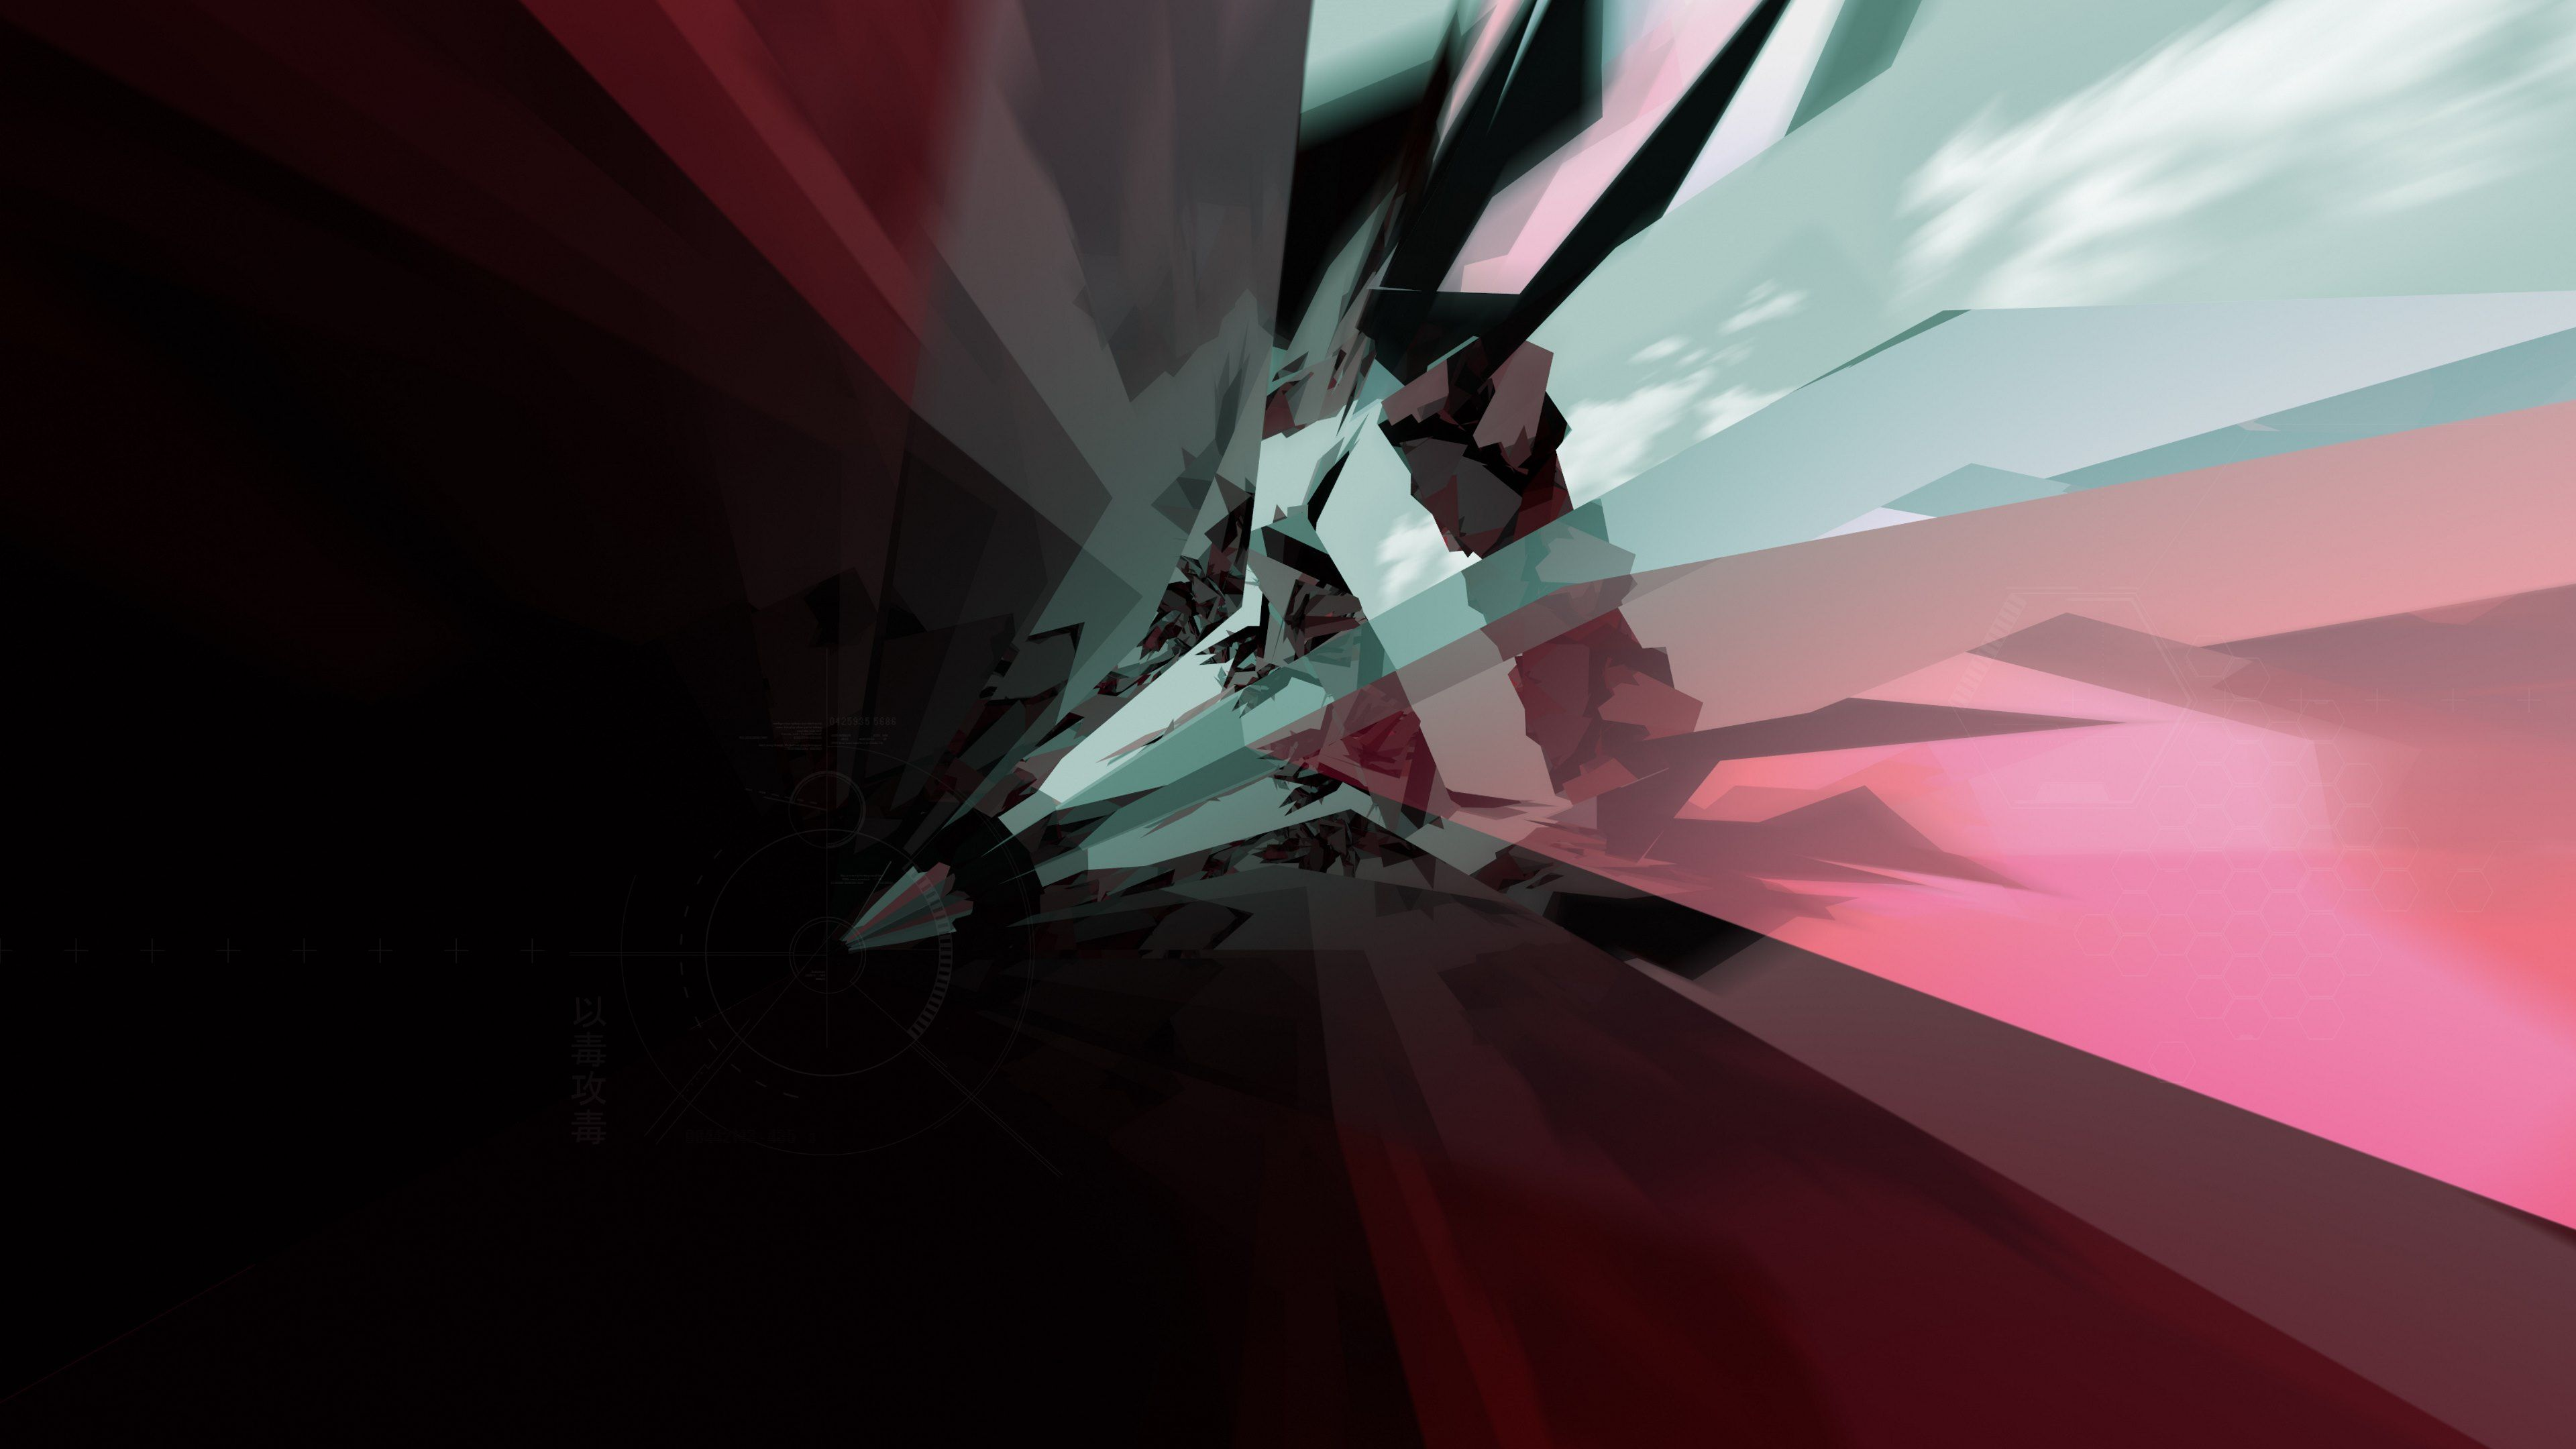 4K 3D Abstract Wallpapers - Top Free 4K